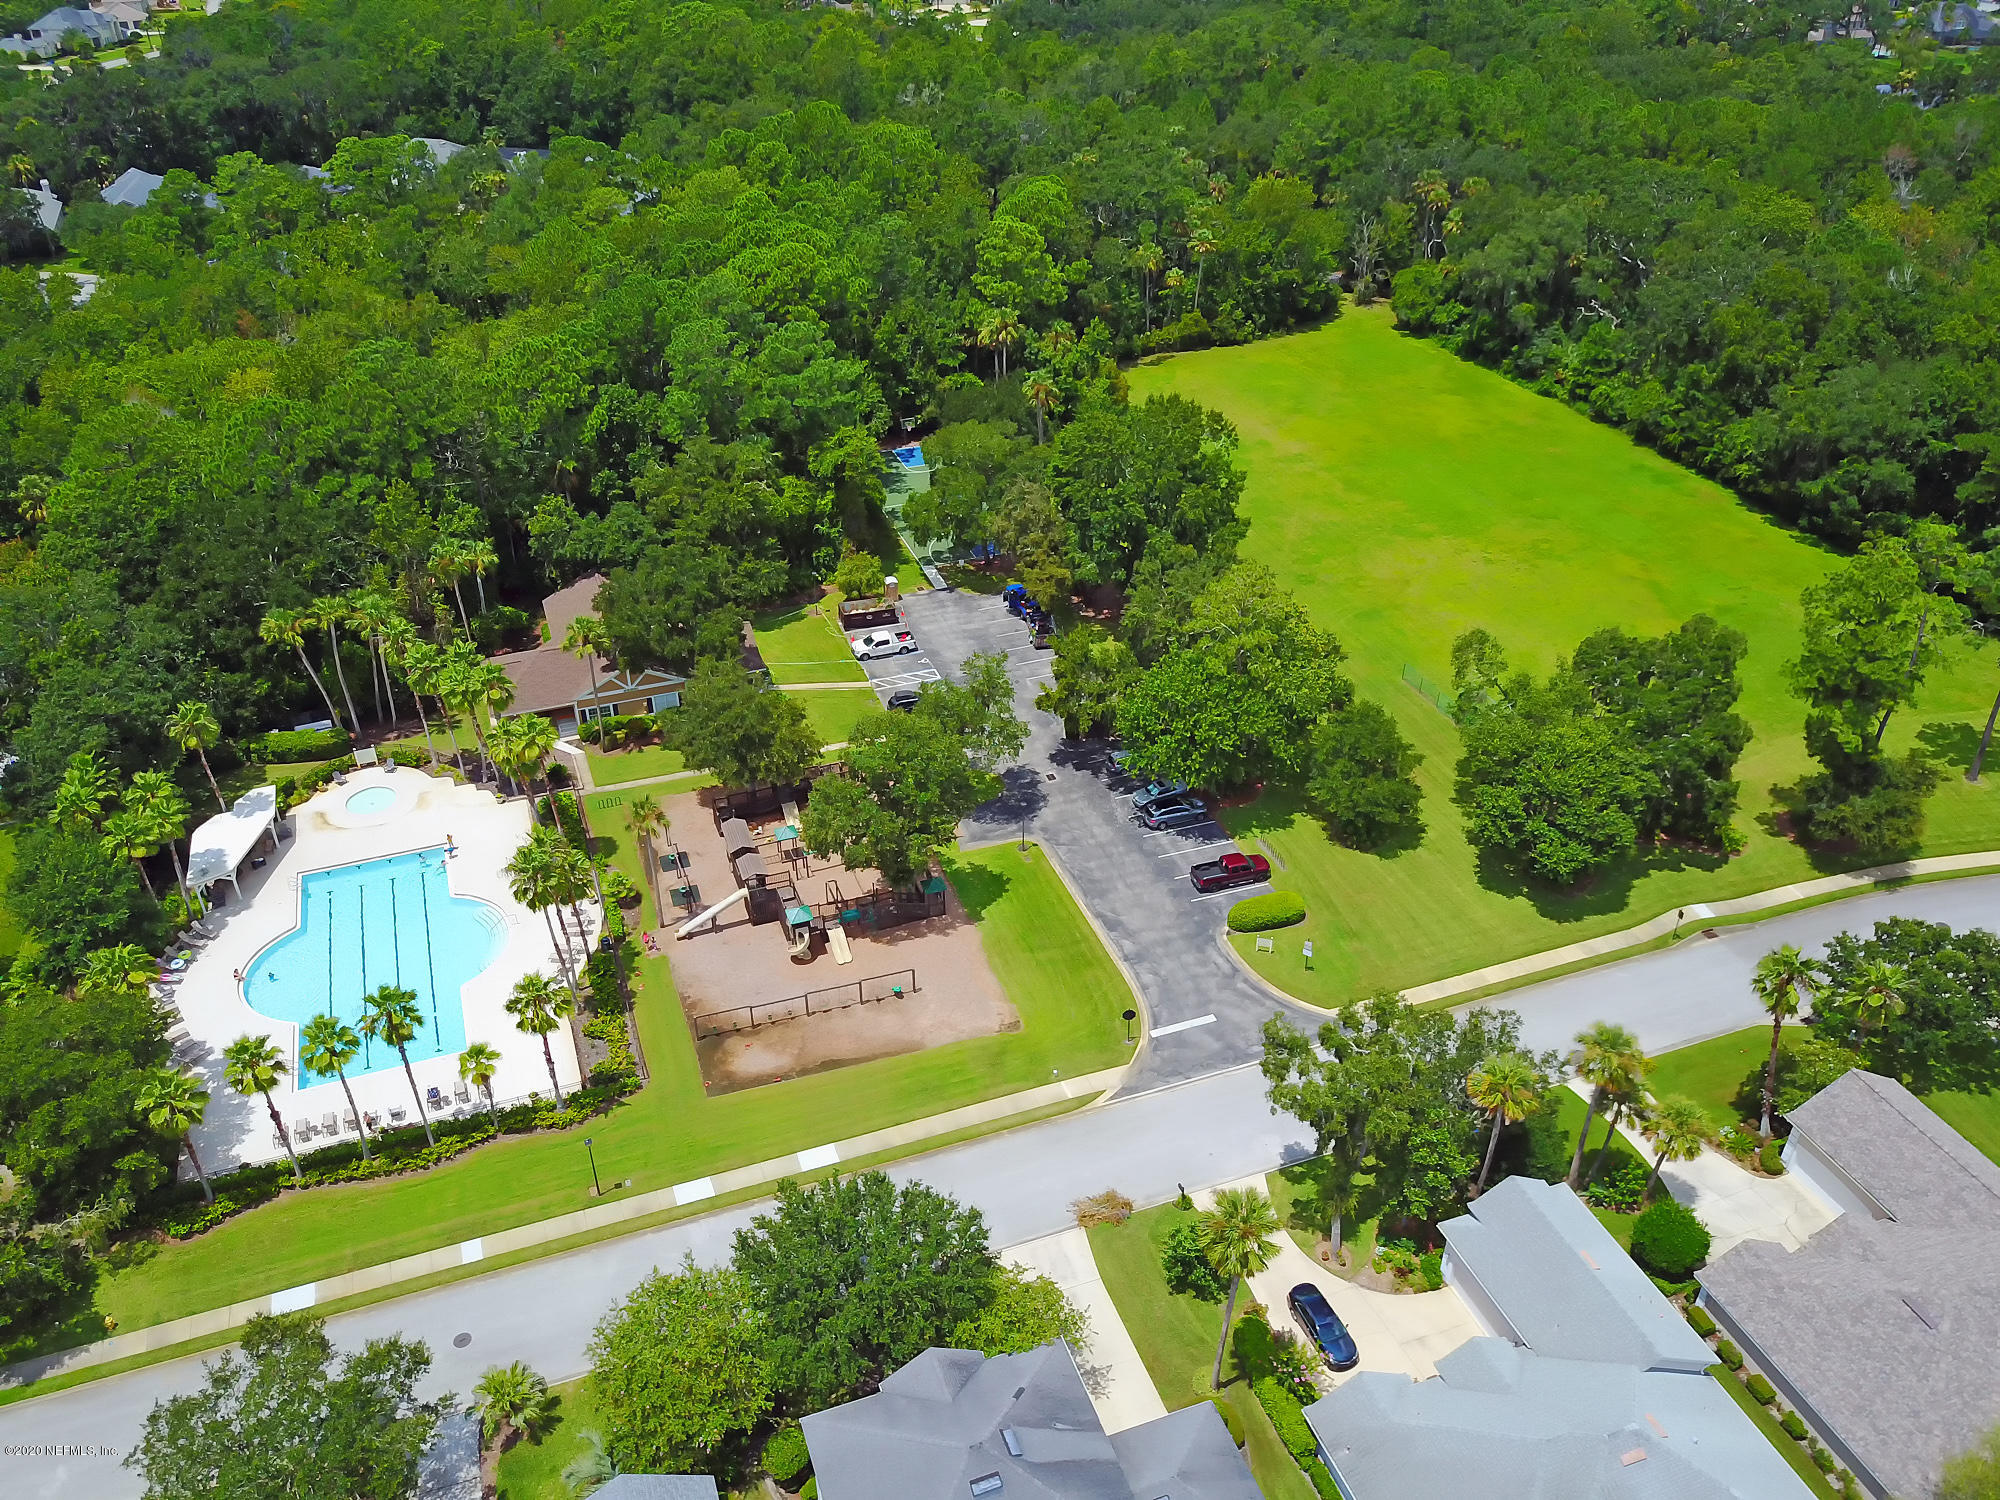 620 LAKE STONE, PONTE VEDRA BEACH, FLORIDA 32082, 4 Bedrooms Bedrooms, ,3 BathroomsBathrooms,Residential,For sale,LAKE STONE,1081613